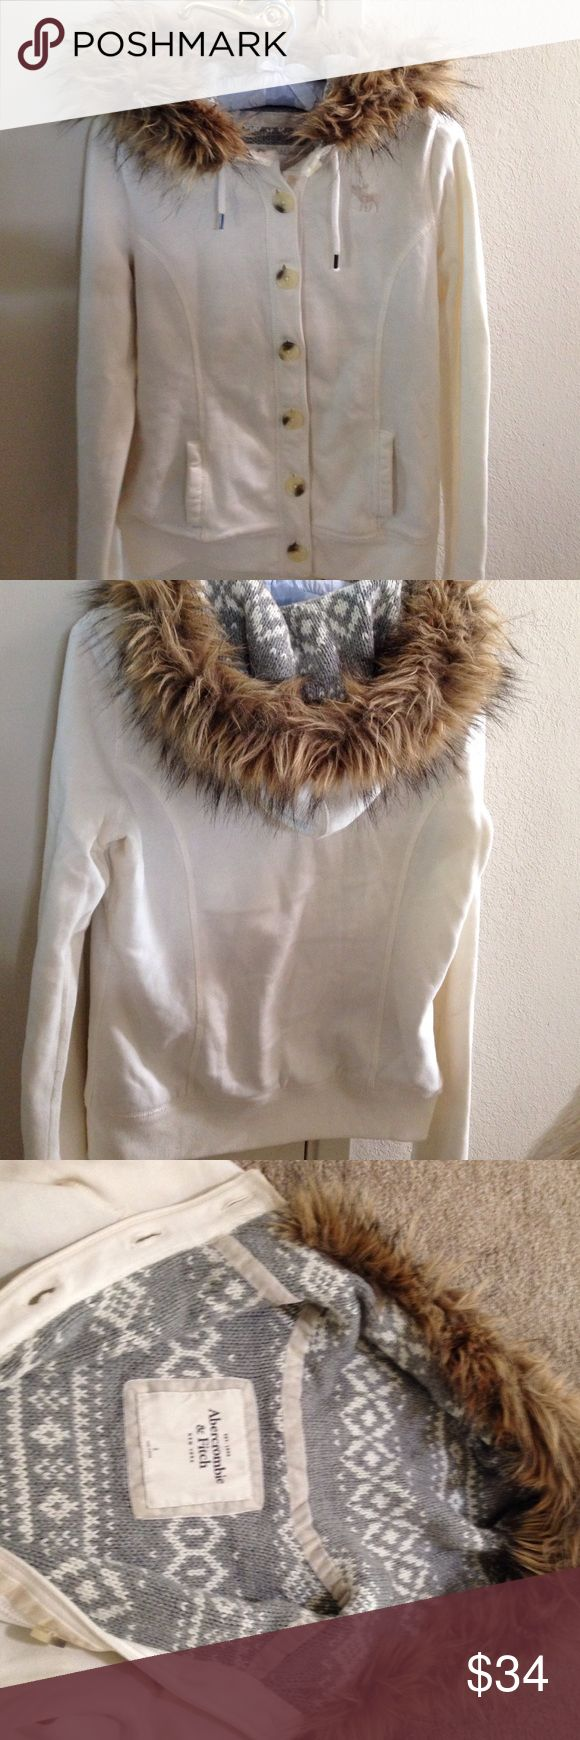 Abercrombie and Fitch button up hoodie Abercrombie and Fitch button up, two front pocket hoodie. Inside is beautiful knitted design in a gray and white.. Excellent condition other than one small spot see photo. Abercrombie & Fitch Jackets & Coats